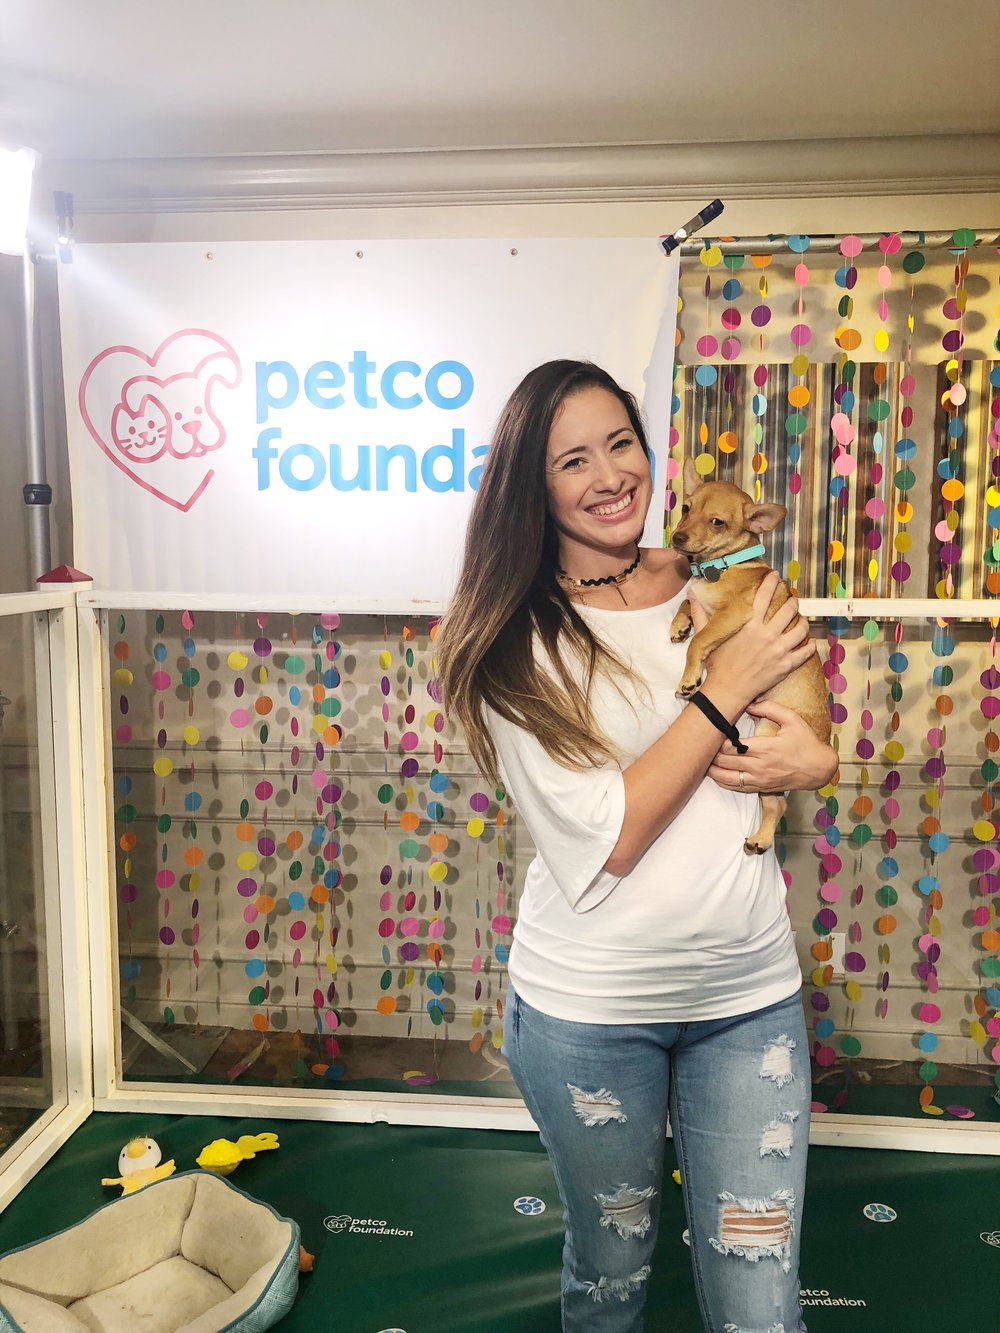 Petco Foundation can help you find your furry friend!